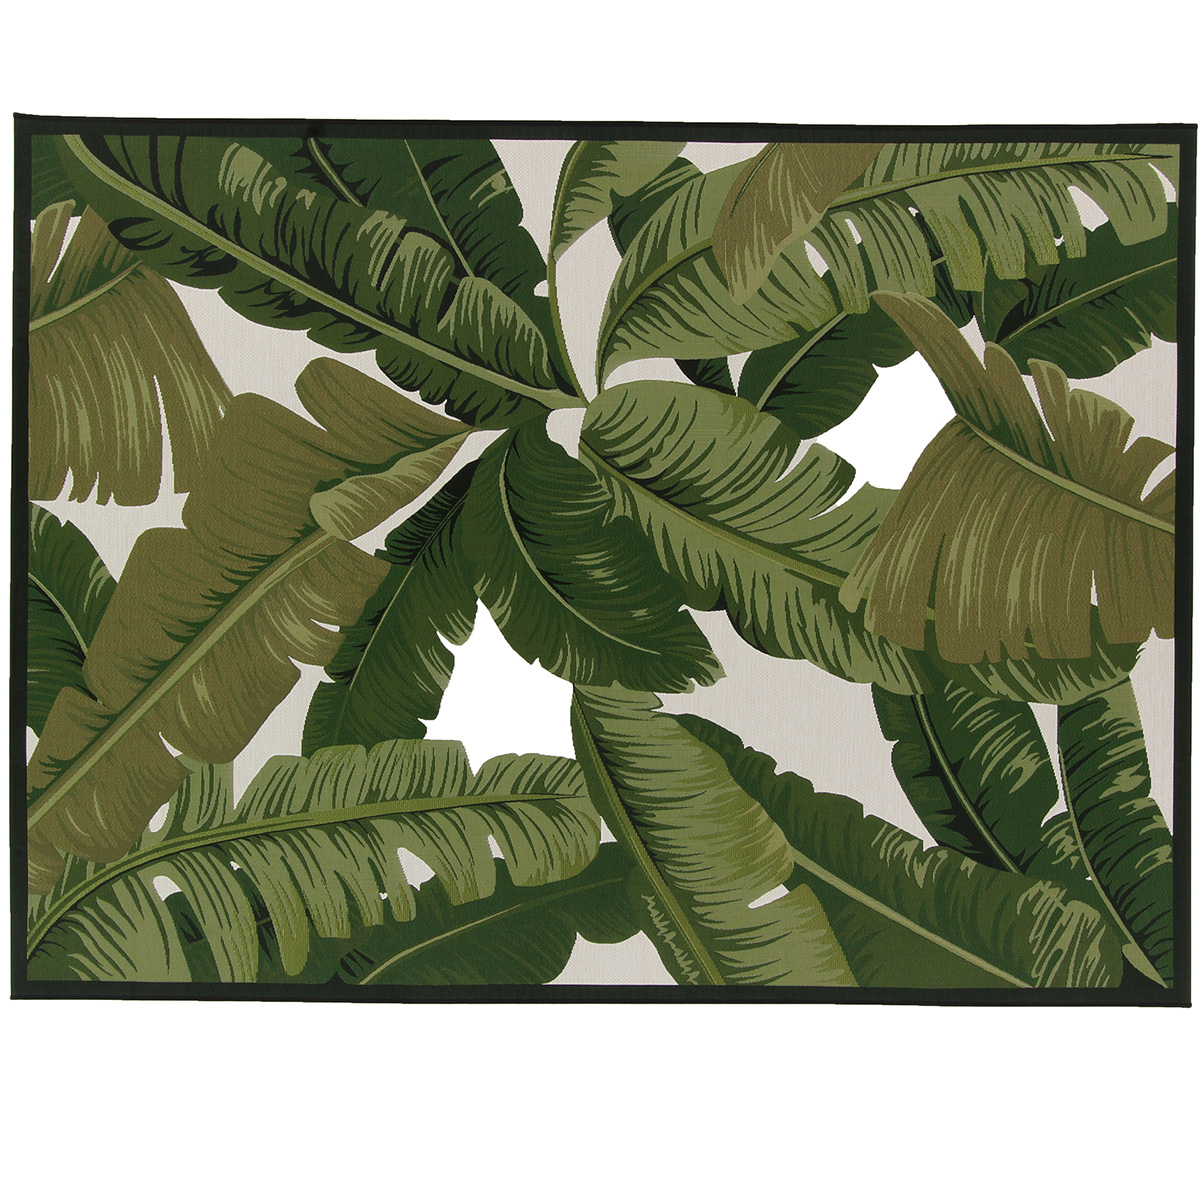 Vloerkleed Brinker Nature Leaves Black | 160 x 230 cm